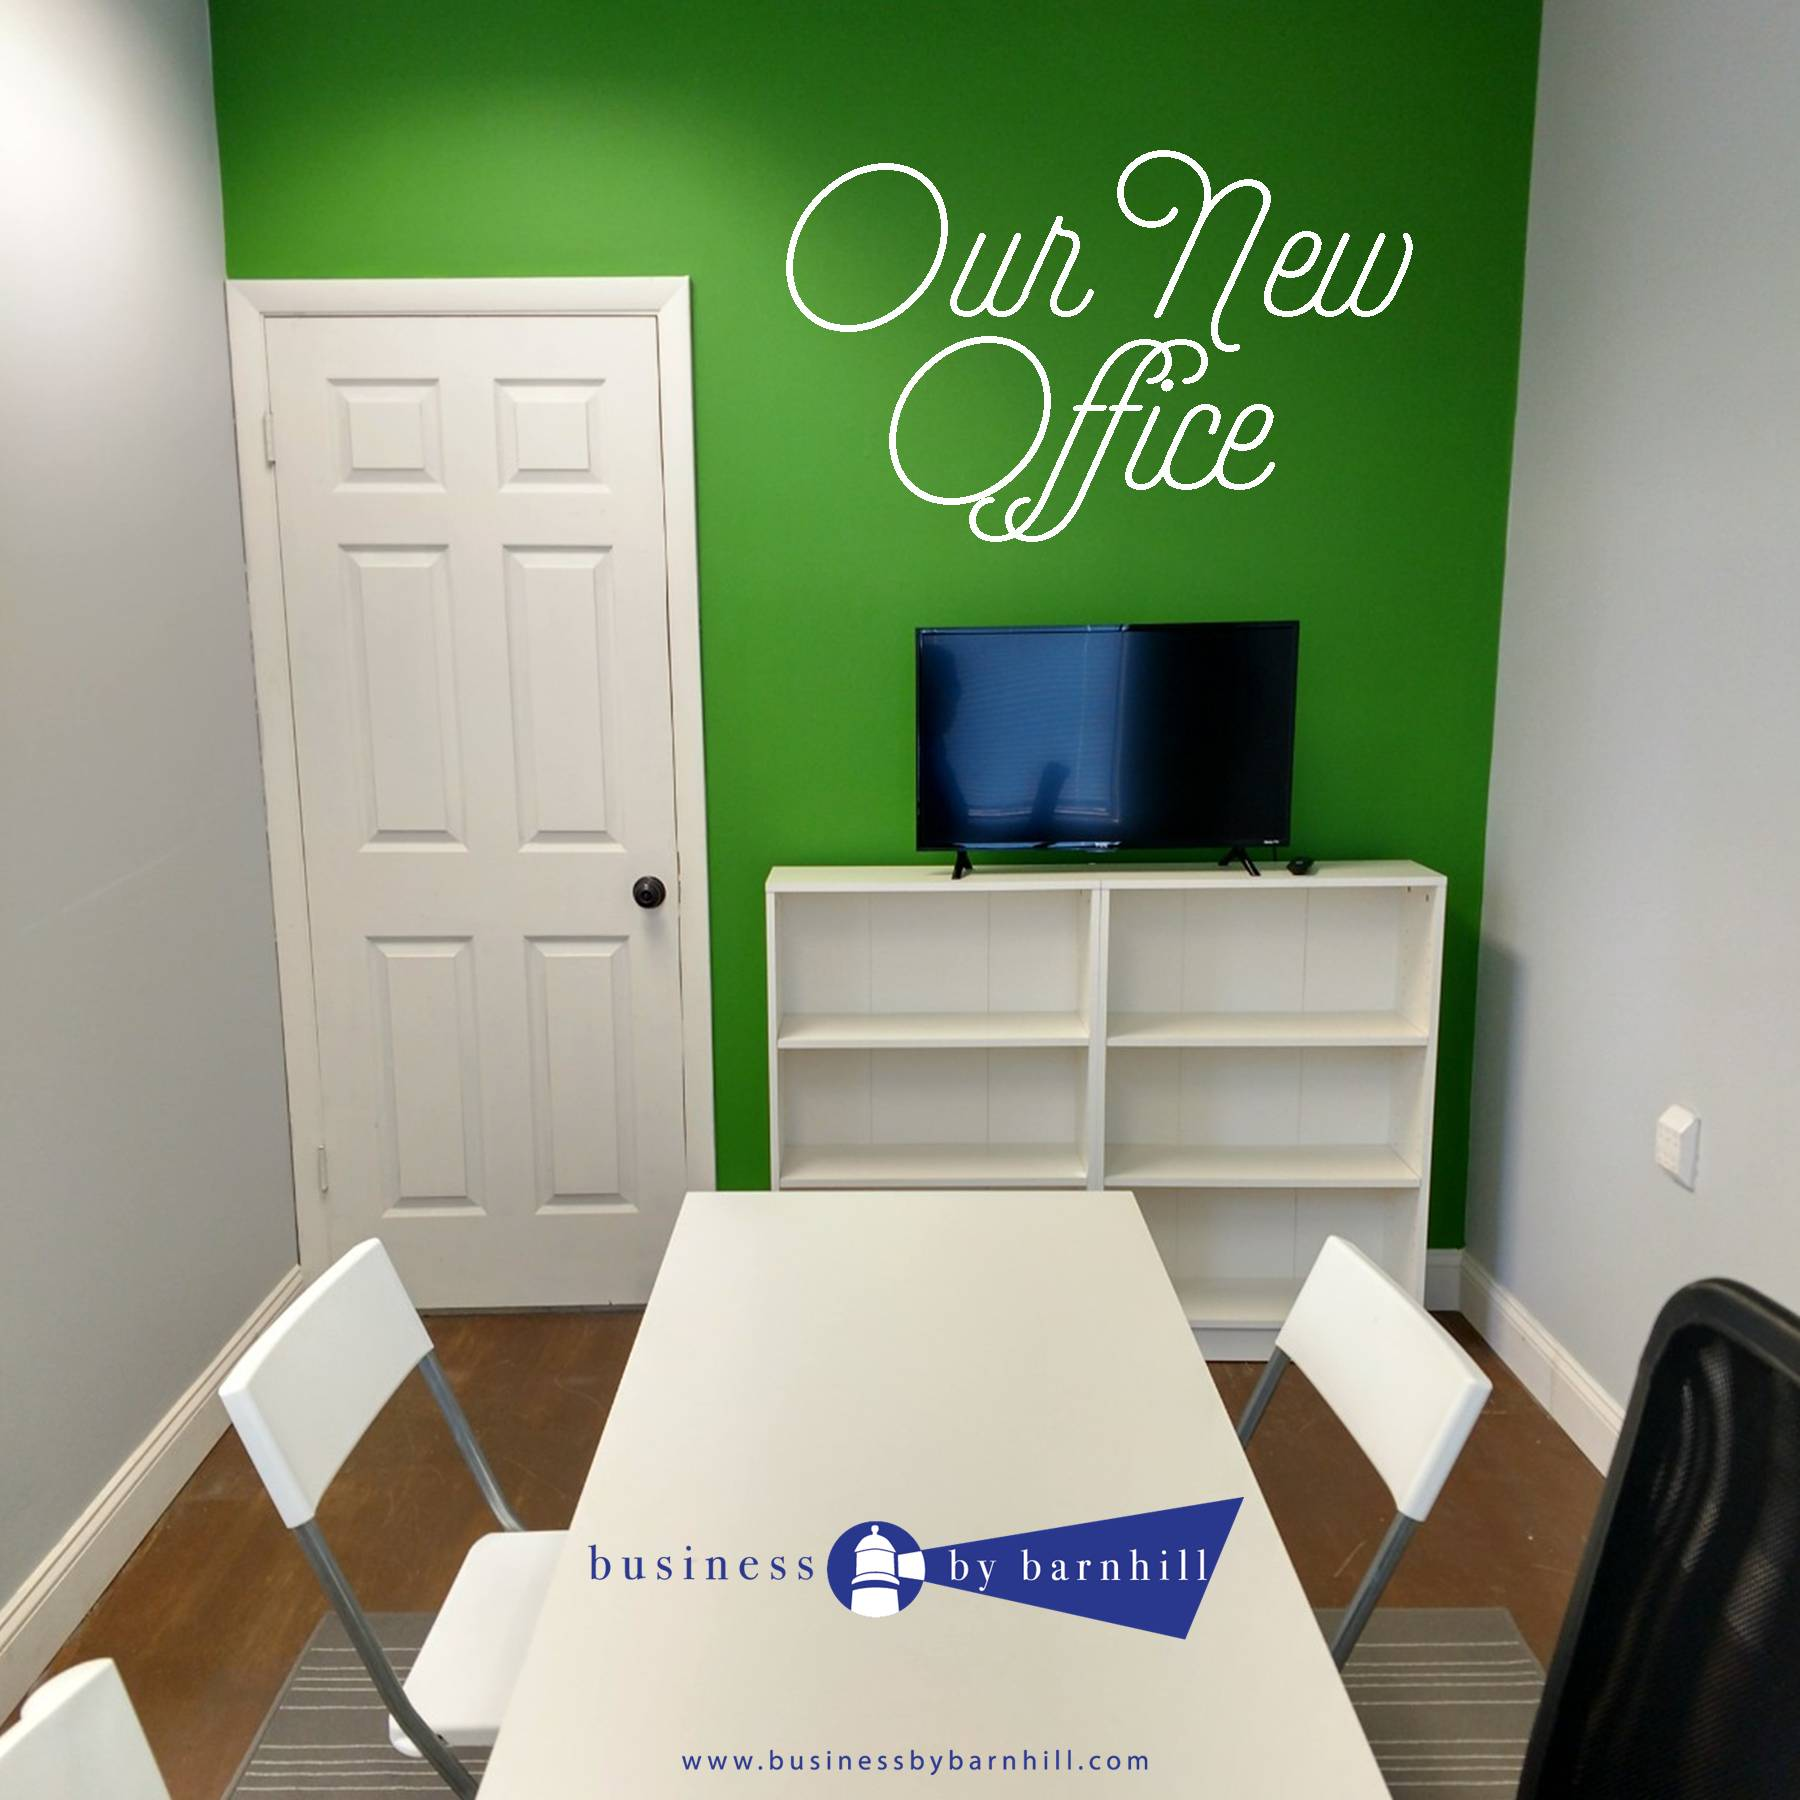 business by barnhill our new office image.jpg